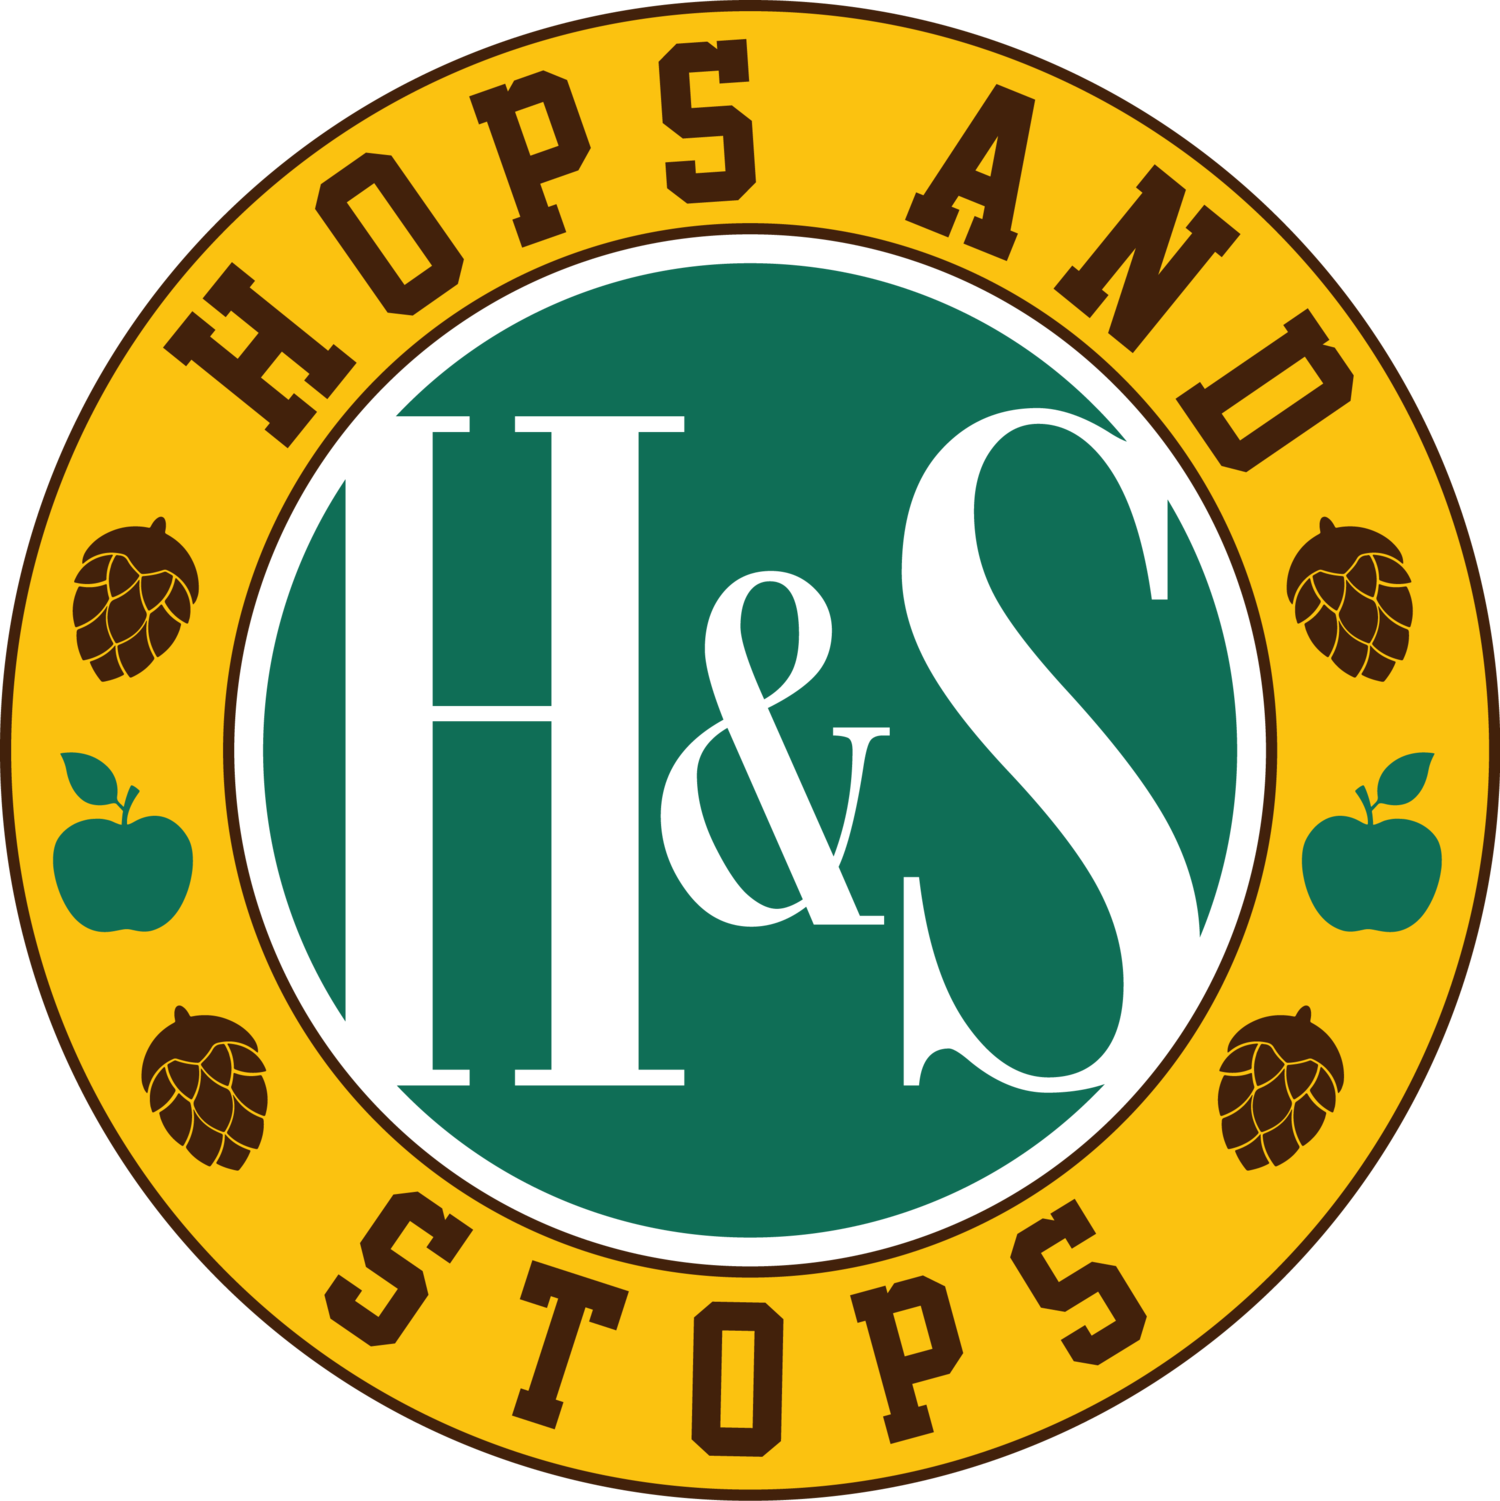 Hops and Stops Boston